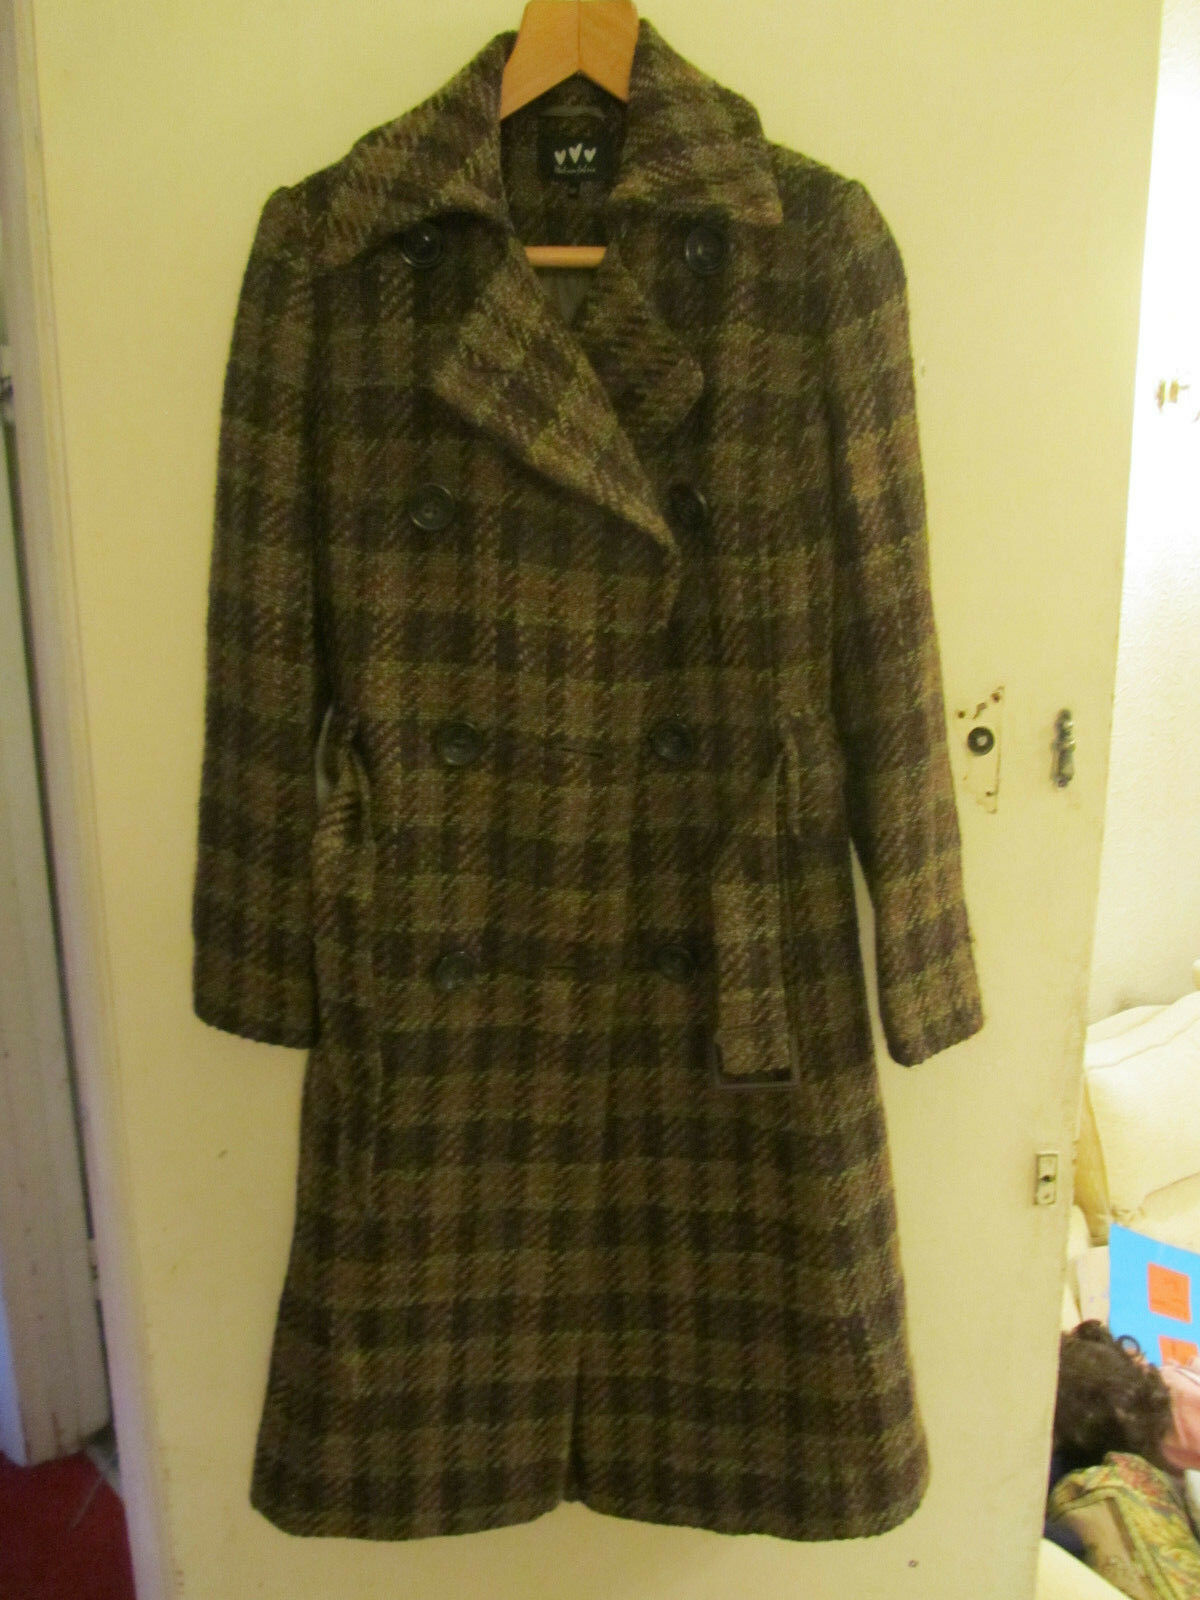 M&S Per Una Long Green & Brown & Metallic Bronze Knit Wool Coat in Size 10 R